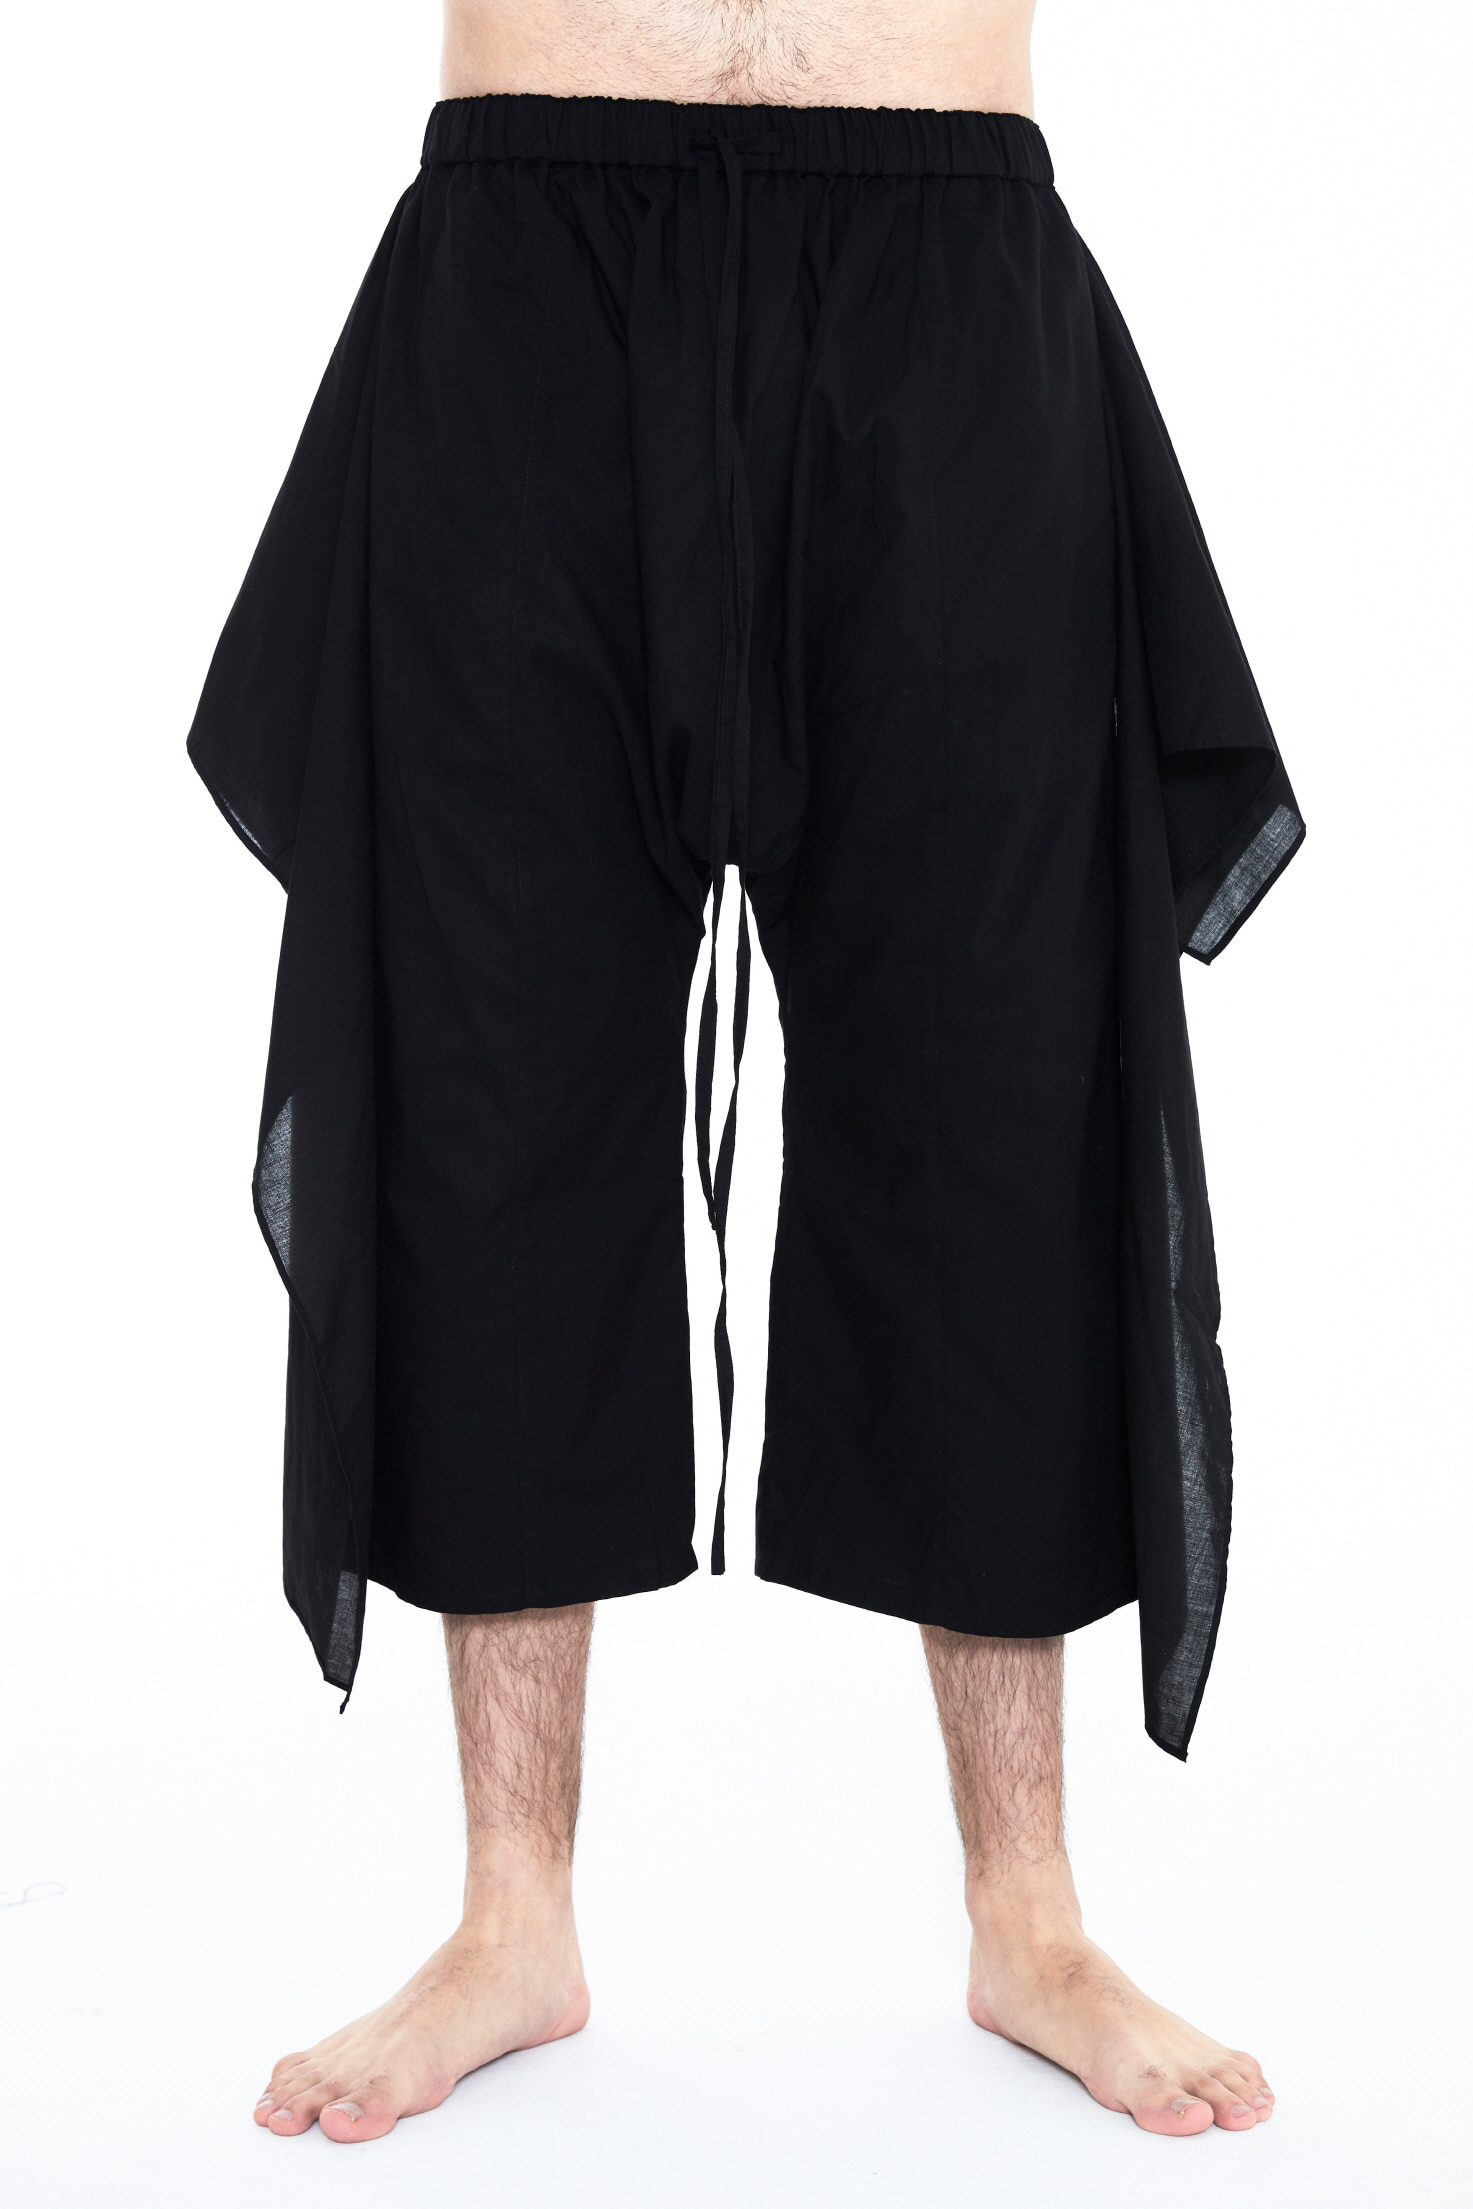 S/S19 CHANG WING PANTS